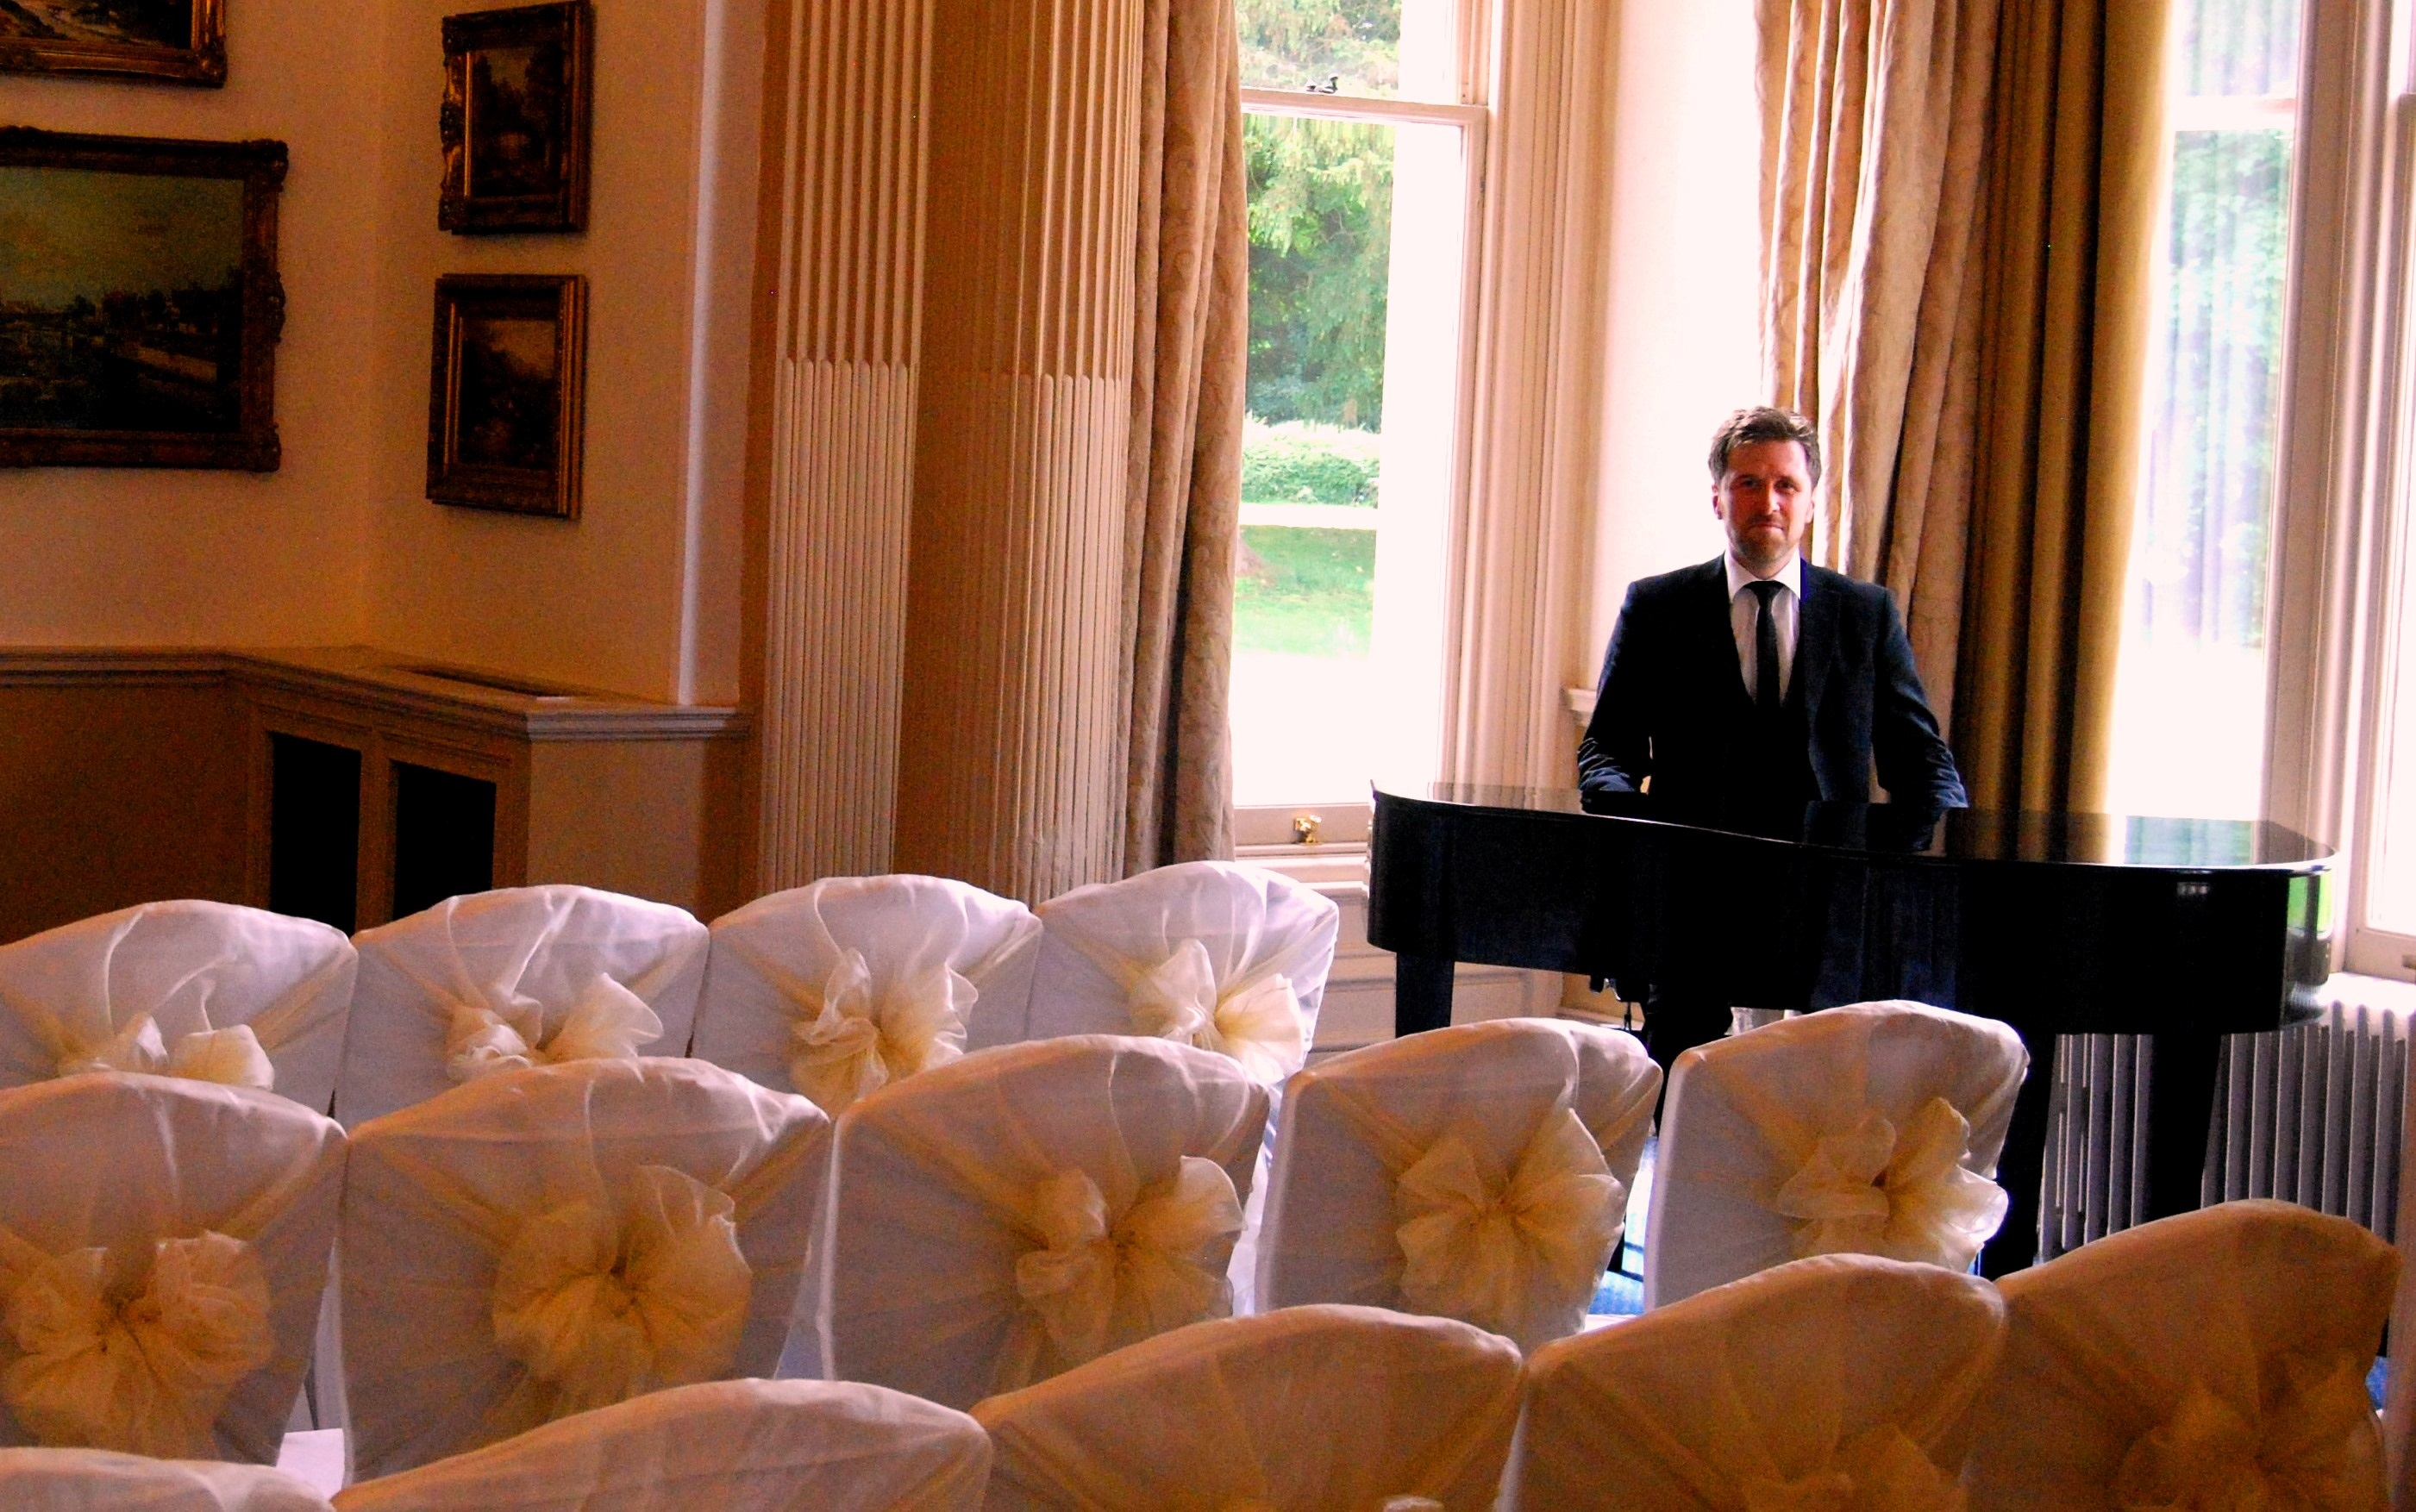 Downhall pianist wedding